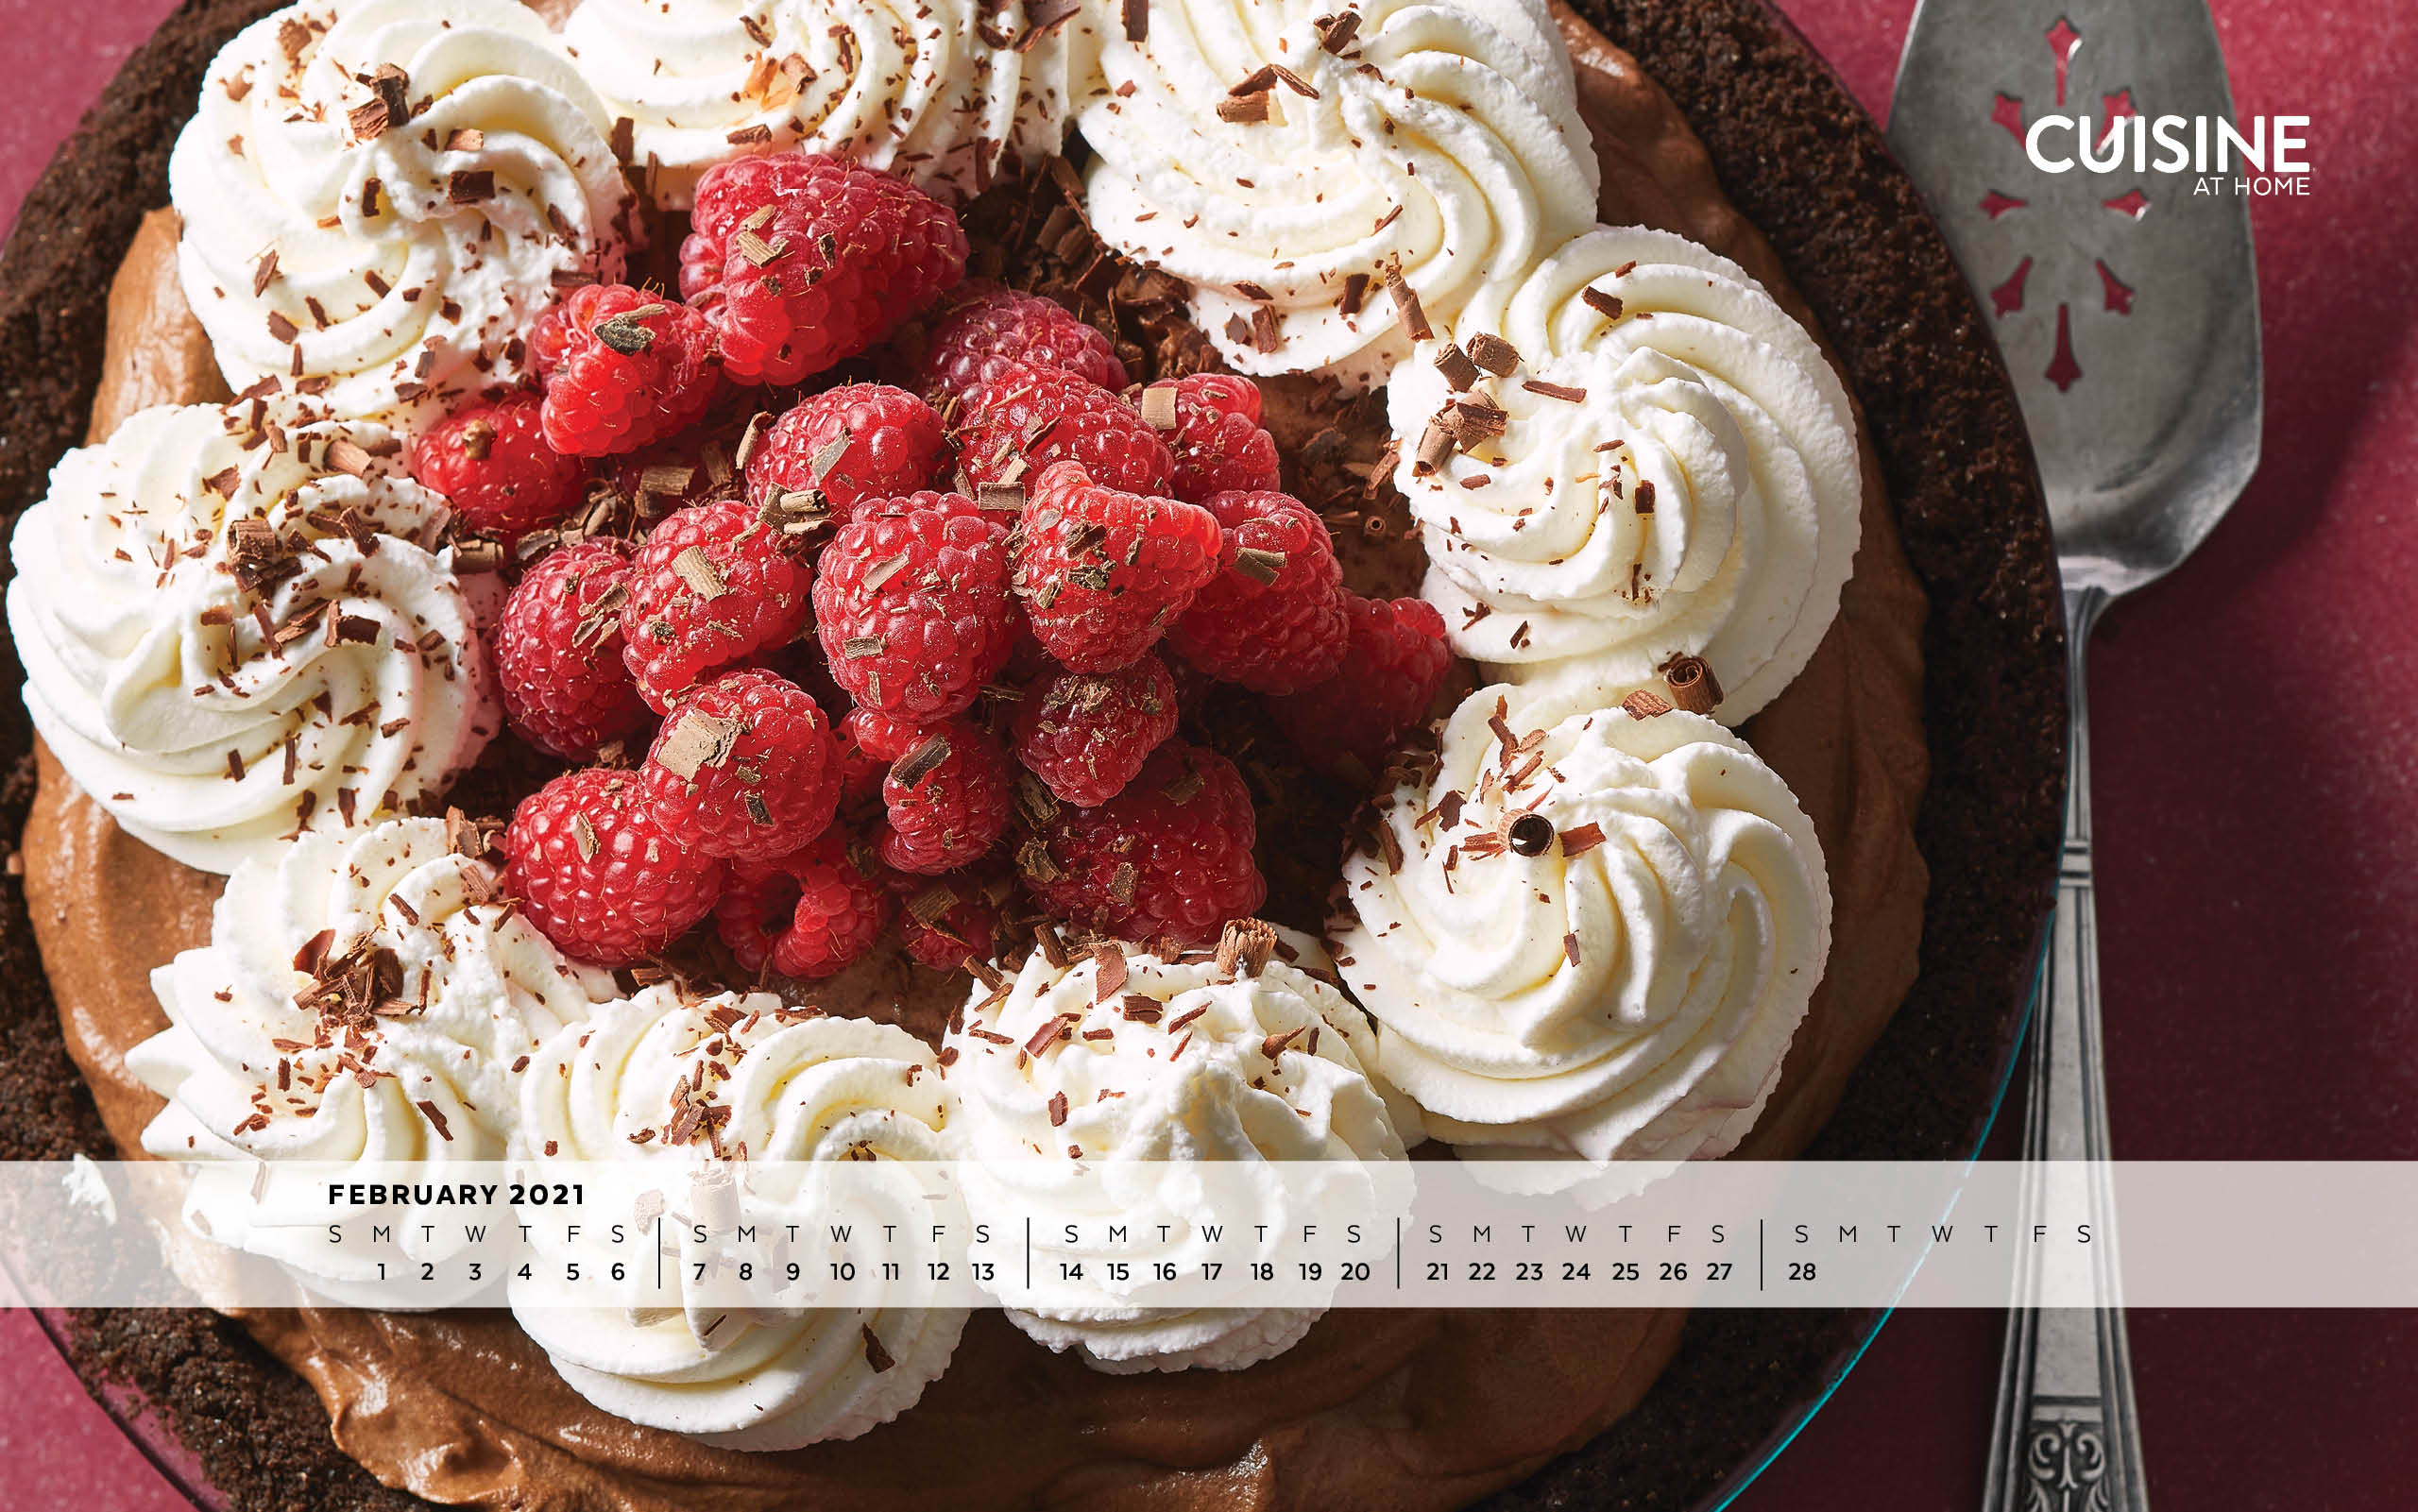 February Valentine's Day chocolate cream pie desktop wallpaper aesthetic with calendar from Cuisine at Home